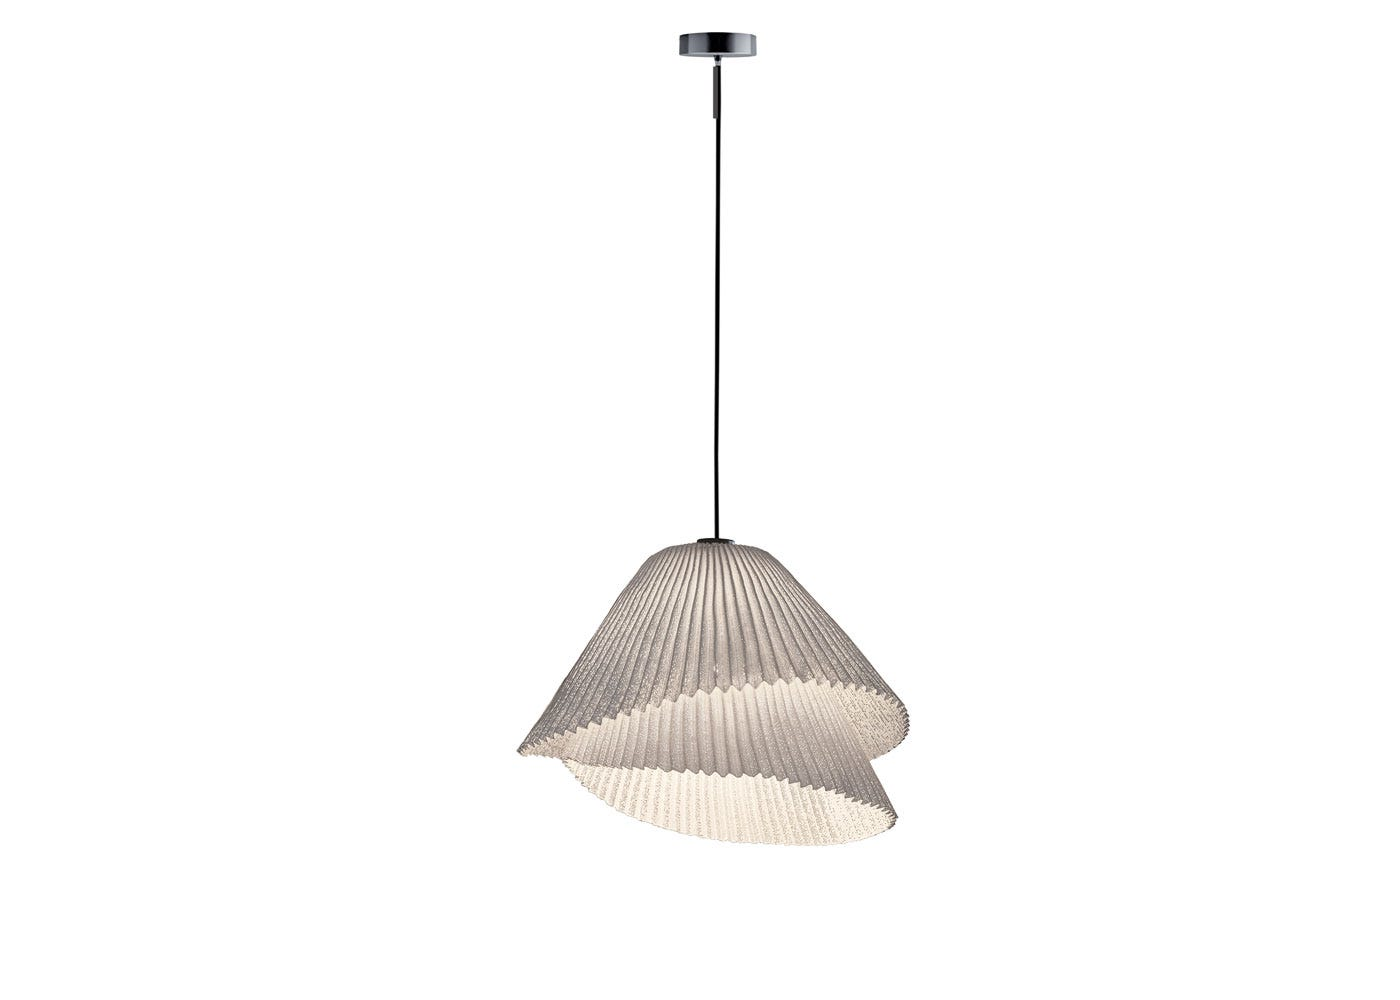 As Shown: Tempo Vivace Pendant Lamp Outdoor with Ceiling Rose